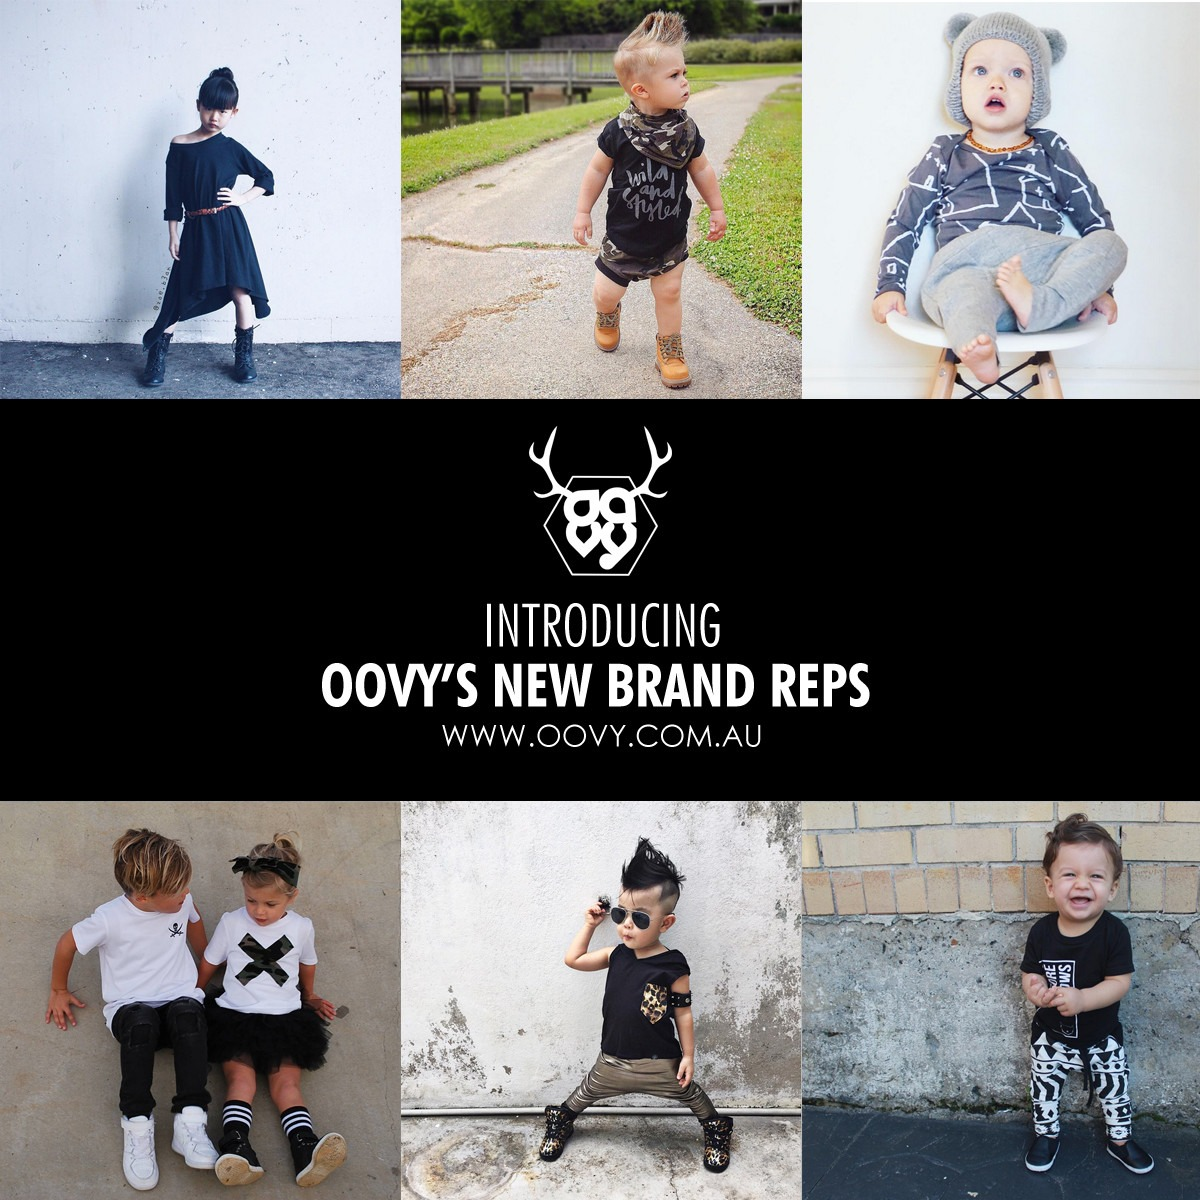 Oovy 2016 Brand Reps